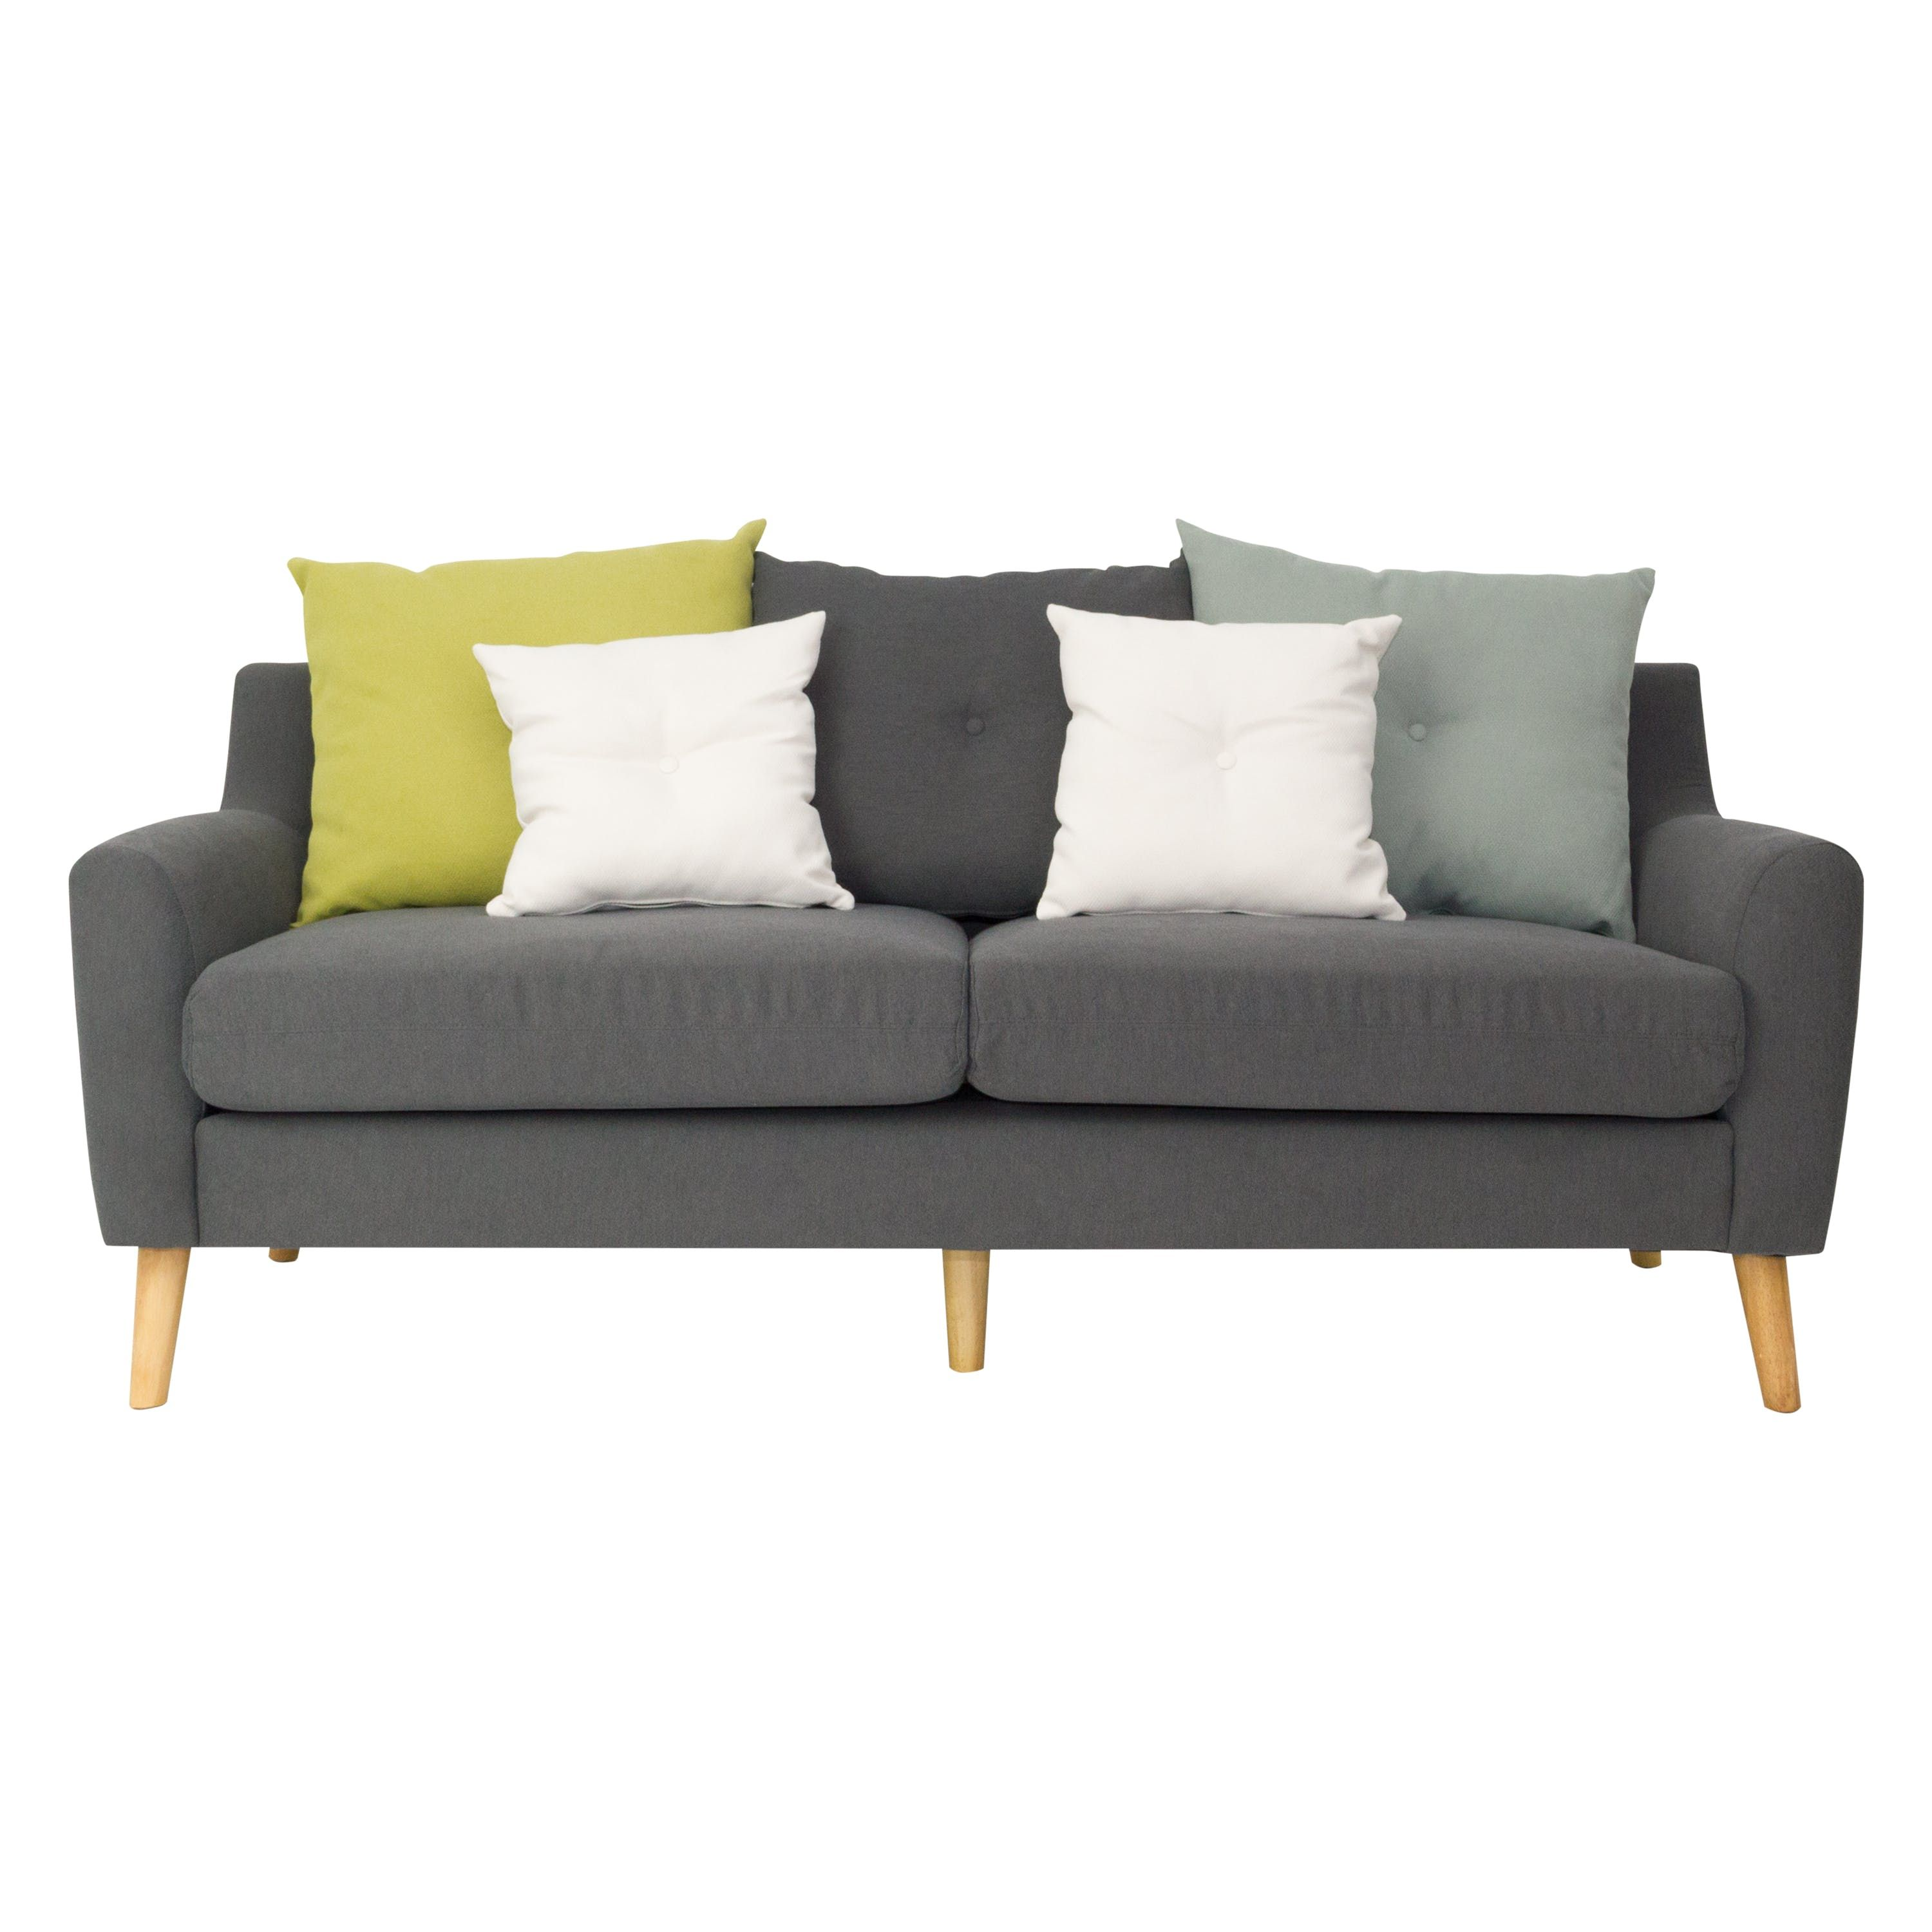 Shop Premium Fabric And Leather Sofas Loveseats At Online Prices In Singapore Scandinavian And Italian Style L Shape Sofas A Sofa 3 Seater Sofa Seater Sofa